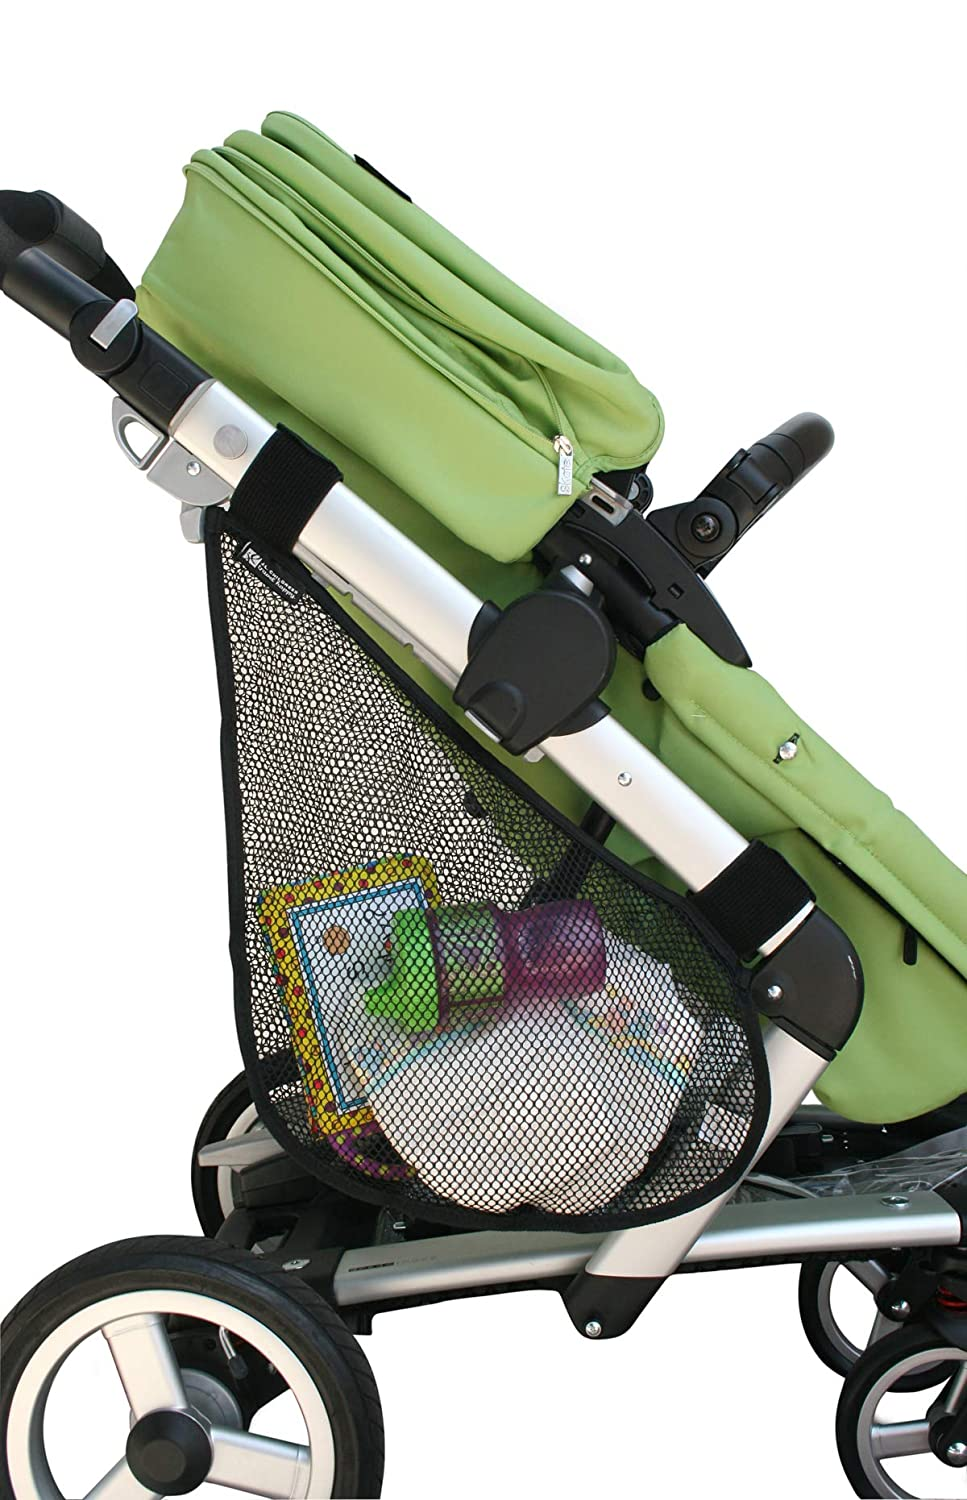 J.L. Childress Side Sling, Universal Fit Stroller Mesh Cargo Net and Organizer, Extra Stroller Storage Space, Non-Slip and Adjustable Straps, Black : Baby Stroller Accessories : Baby